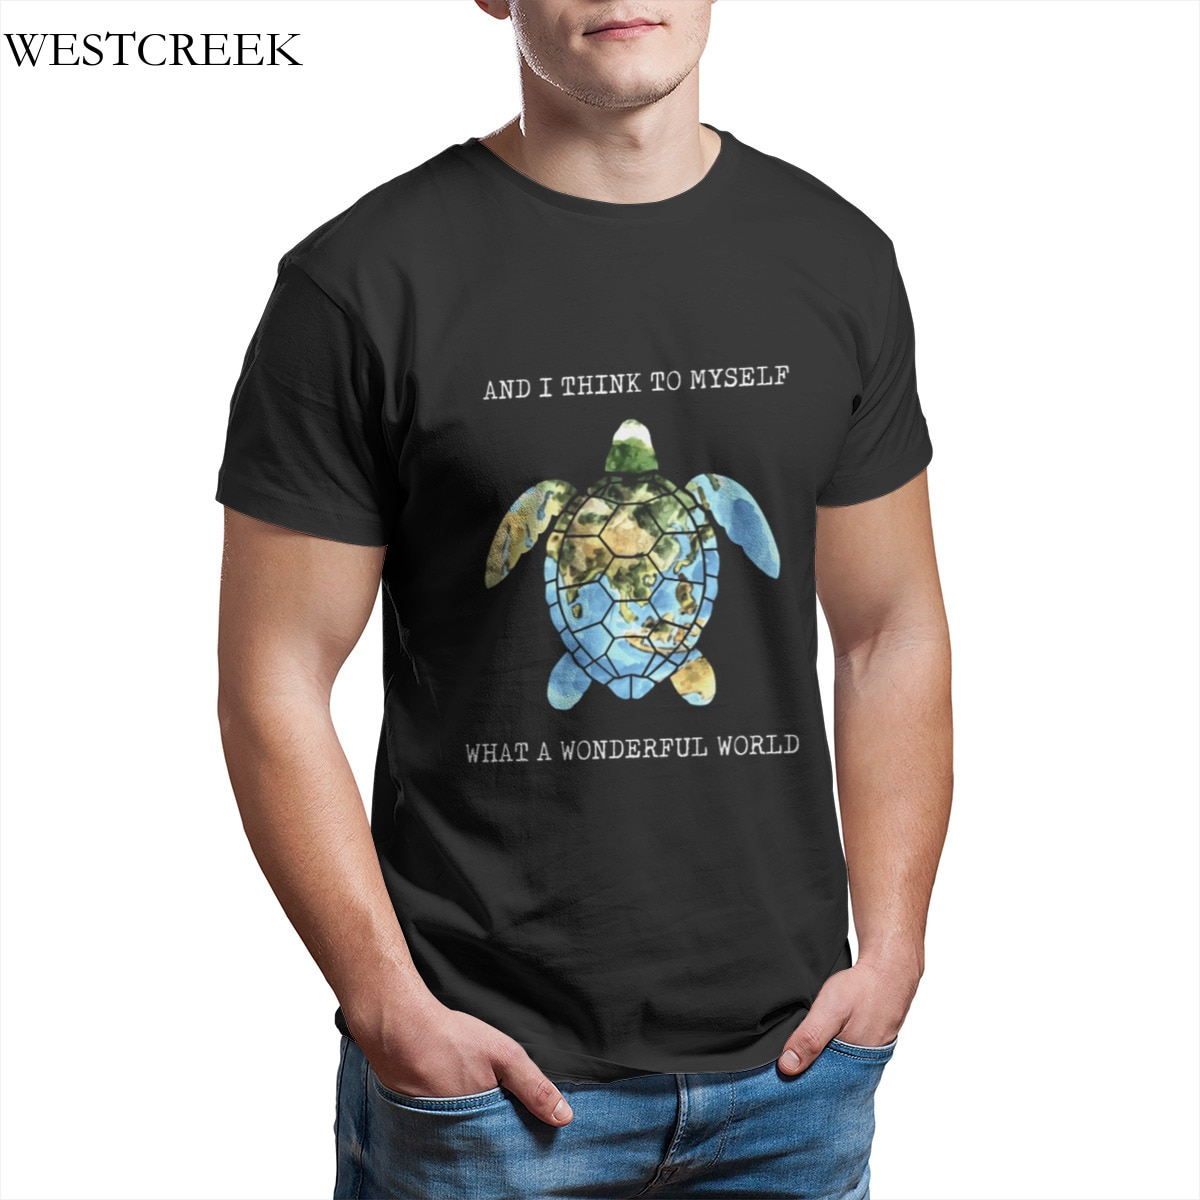 Wholesale Men's T-Shirt And I Think To Myself What A Wonderful World tortoise Essentials Funny Hip-Hop Tees 33241